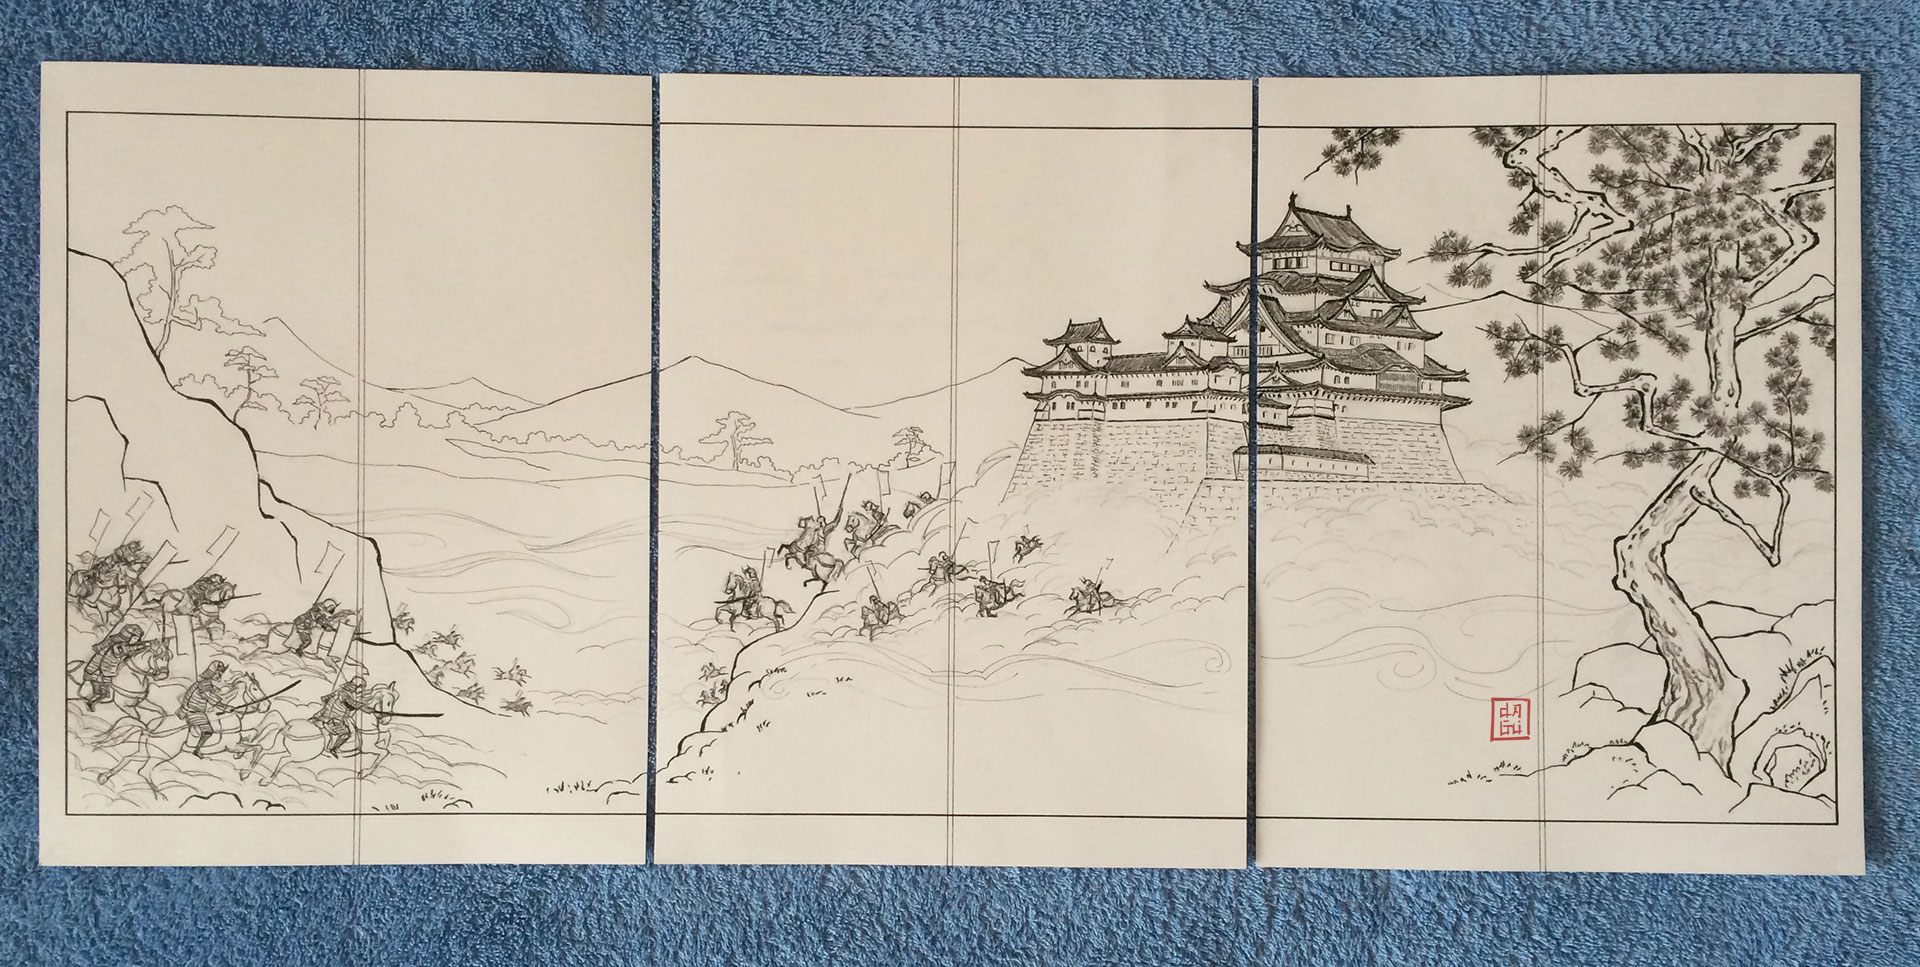 Samurai Attack In Japan ink finished